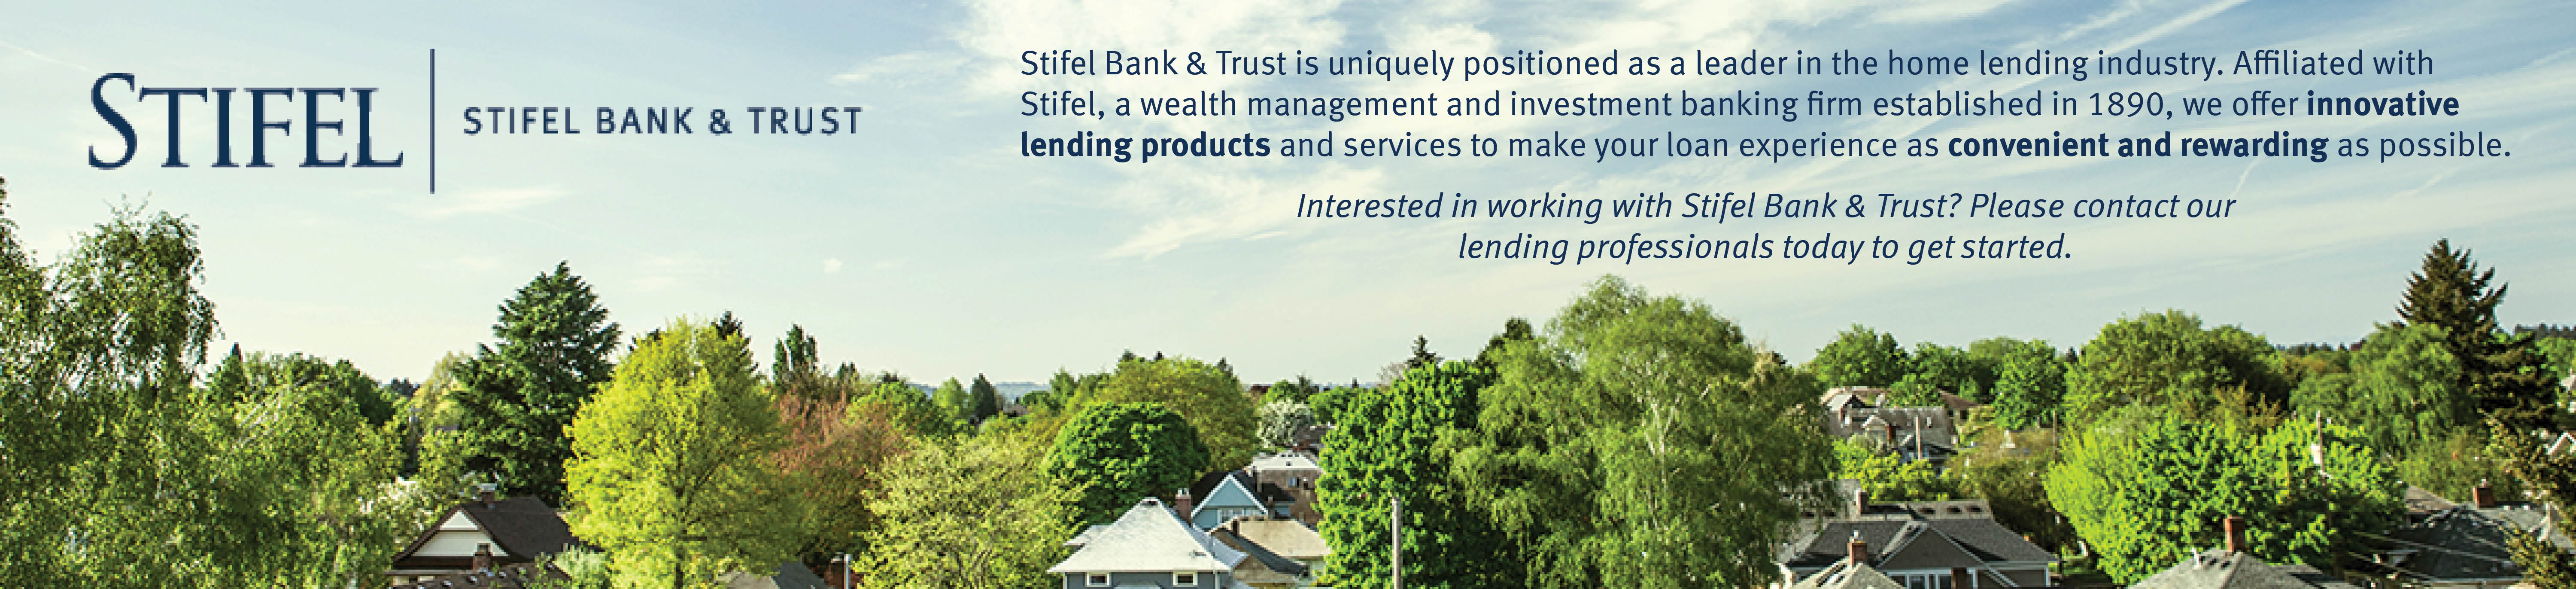 Stifel Bank & Trust Mortgage Lending